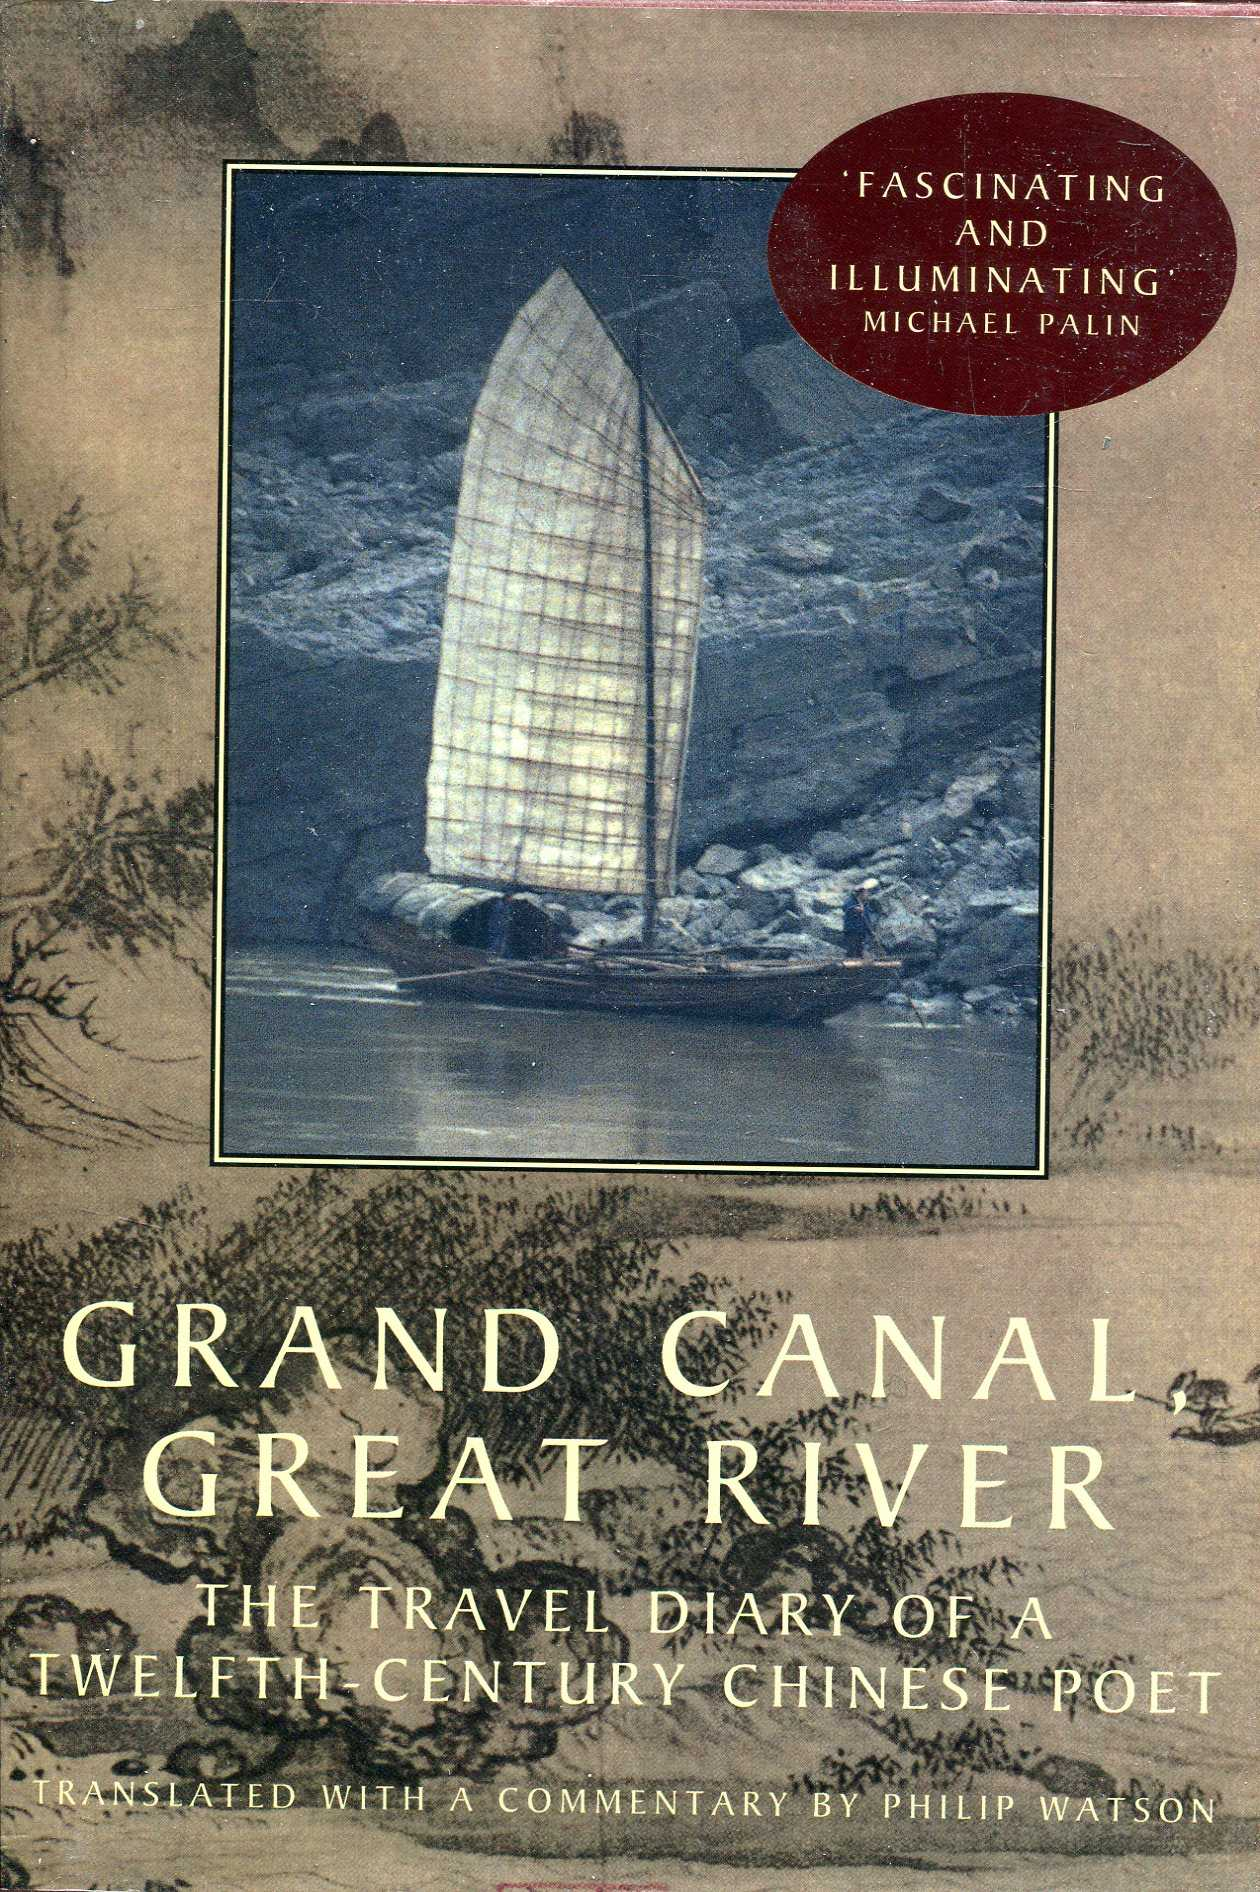 Image for Grand Canal, Great River : The Travel Diary of a Twelfth-Century Chinese Poet